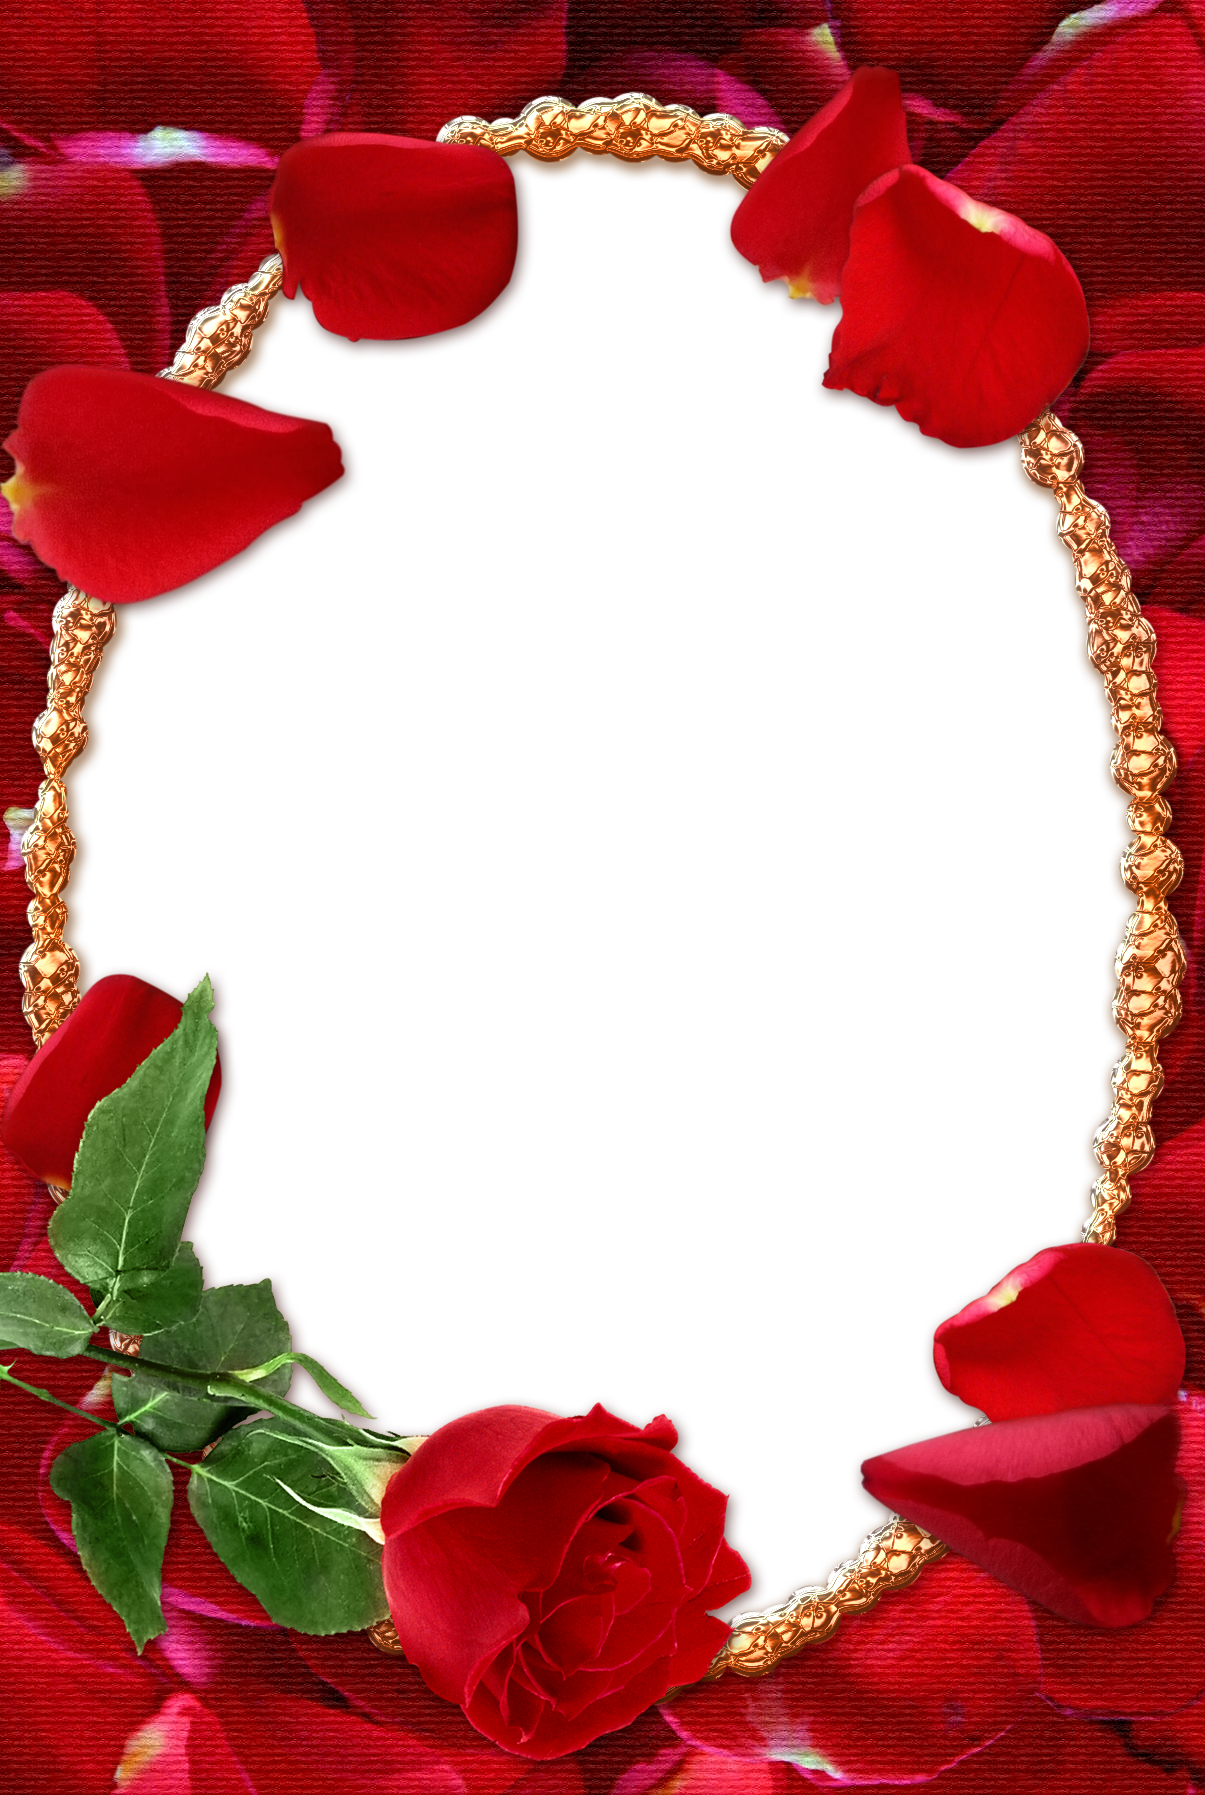 Rose Transparent Frame Png 1205 1795 Boarders And Frames Borders And Frames Red Roses